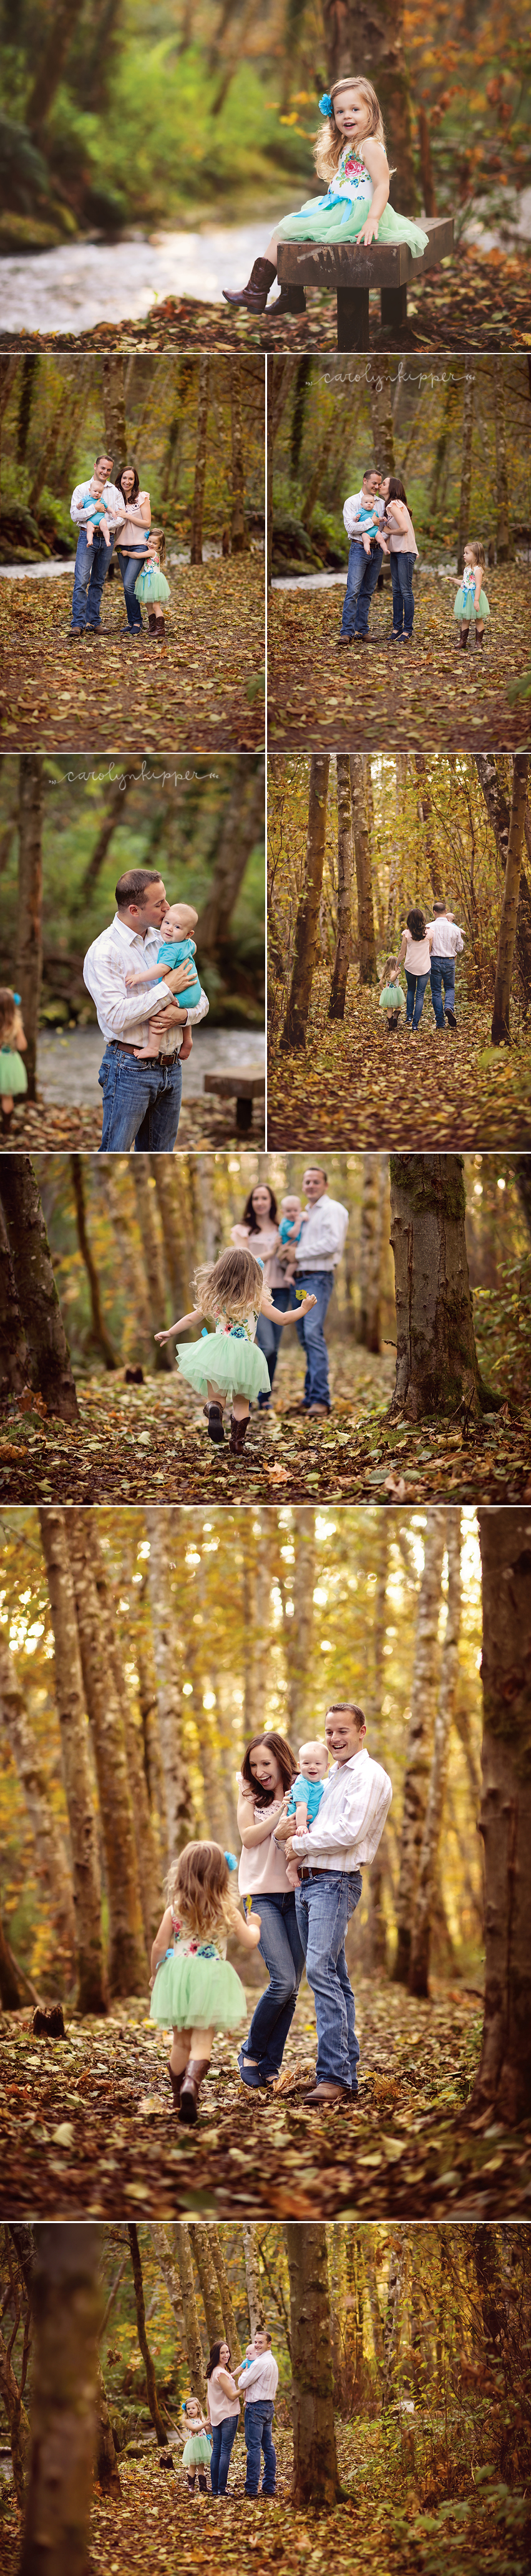 river oaks family photographer